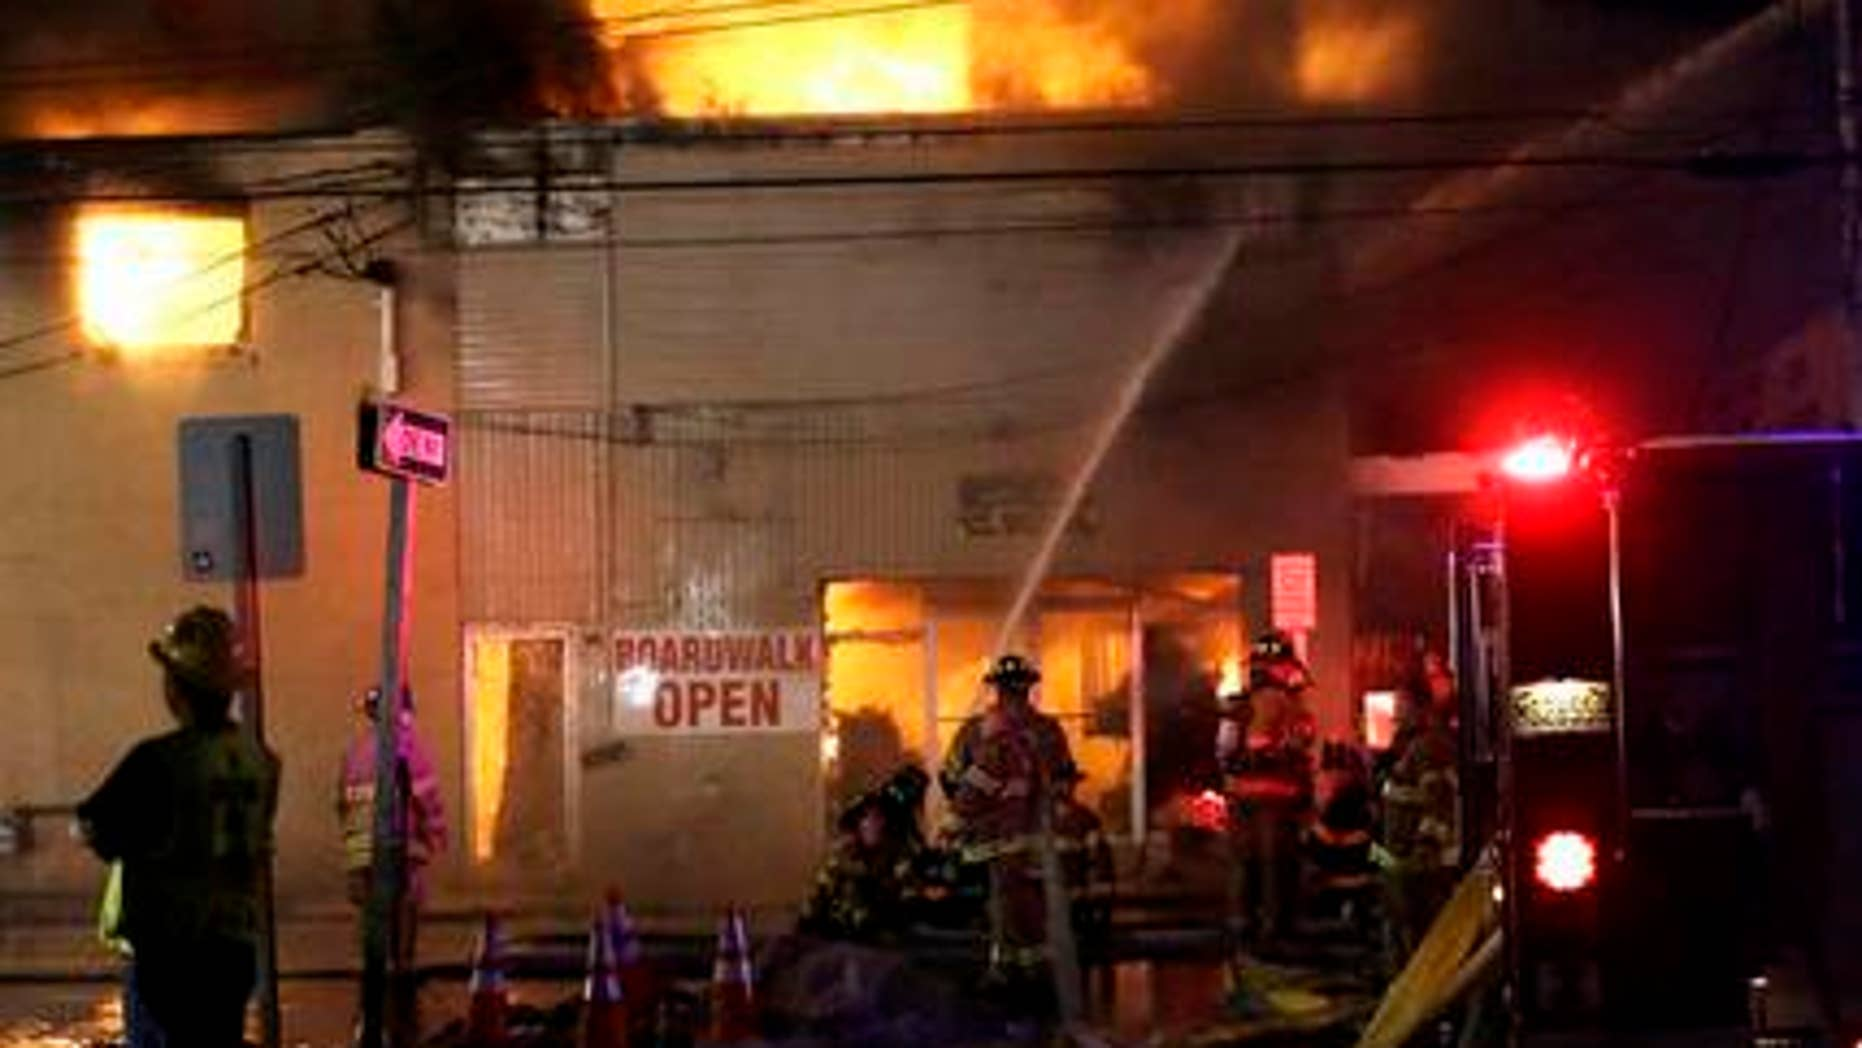 In this Thursday, Sept. 12, 2013, file photograph, firefighters battle a blaze in a building along the Seaside Park boardwalk in Seaside Park, N.J. The historic Jersey shore pier that was pummelled by Superstorm Sandy, then destroyed in a spectacular fire may finally be done in by building regulations. The owner of the former Funtown Pier in Seaside Park, said he won't rebuild it if the town sticks to height restrictions it wants to impose on rides on a rebuilt pier.